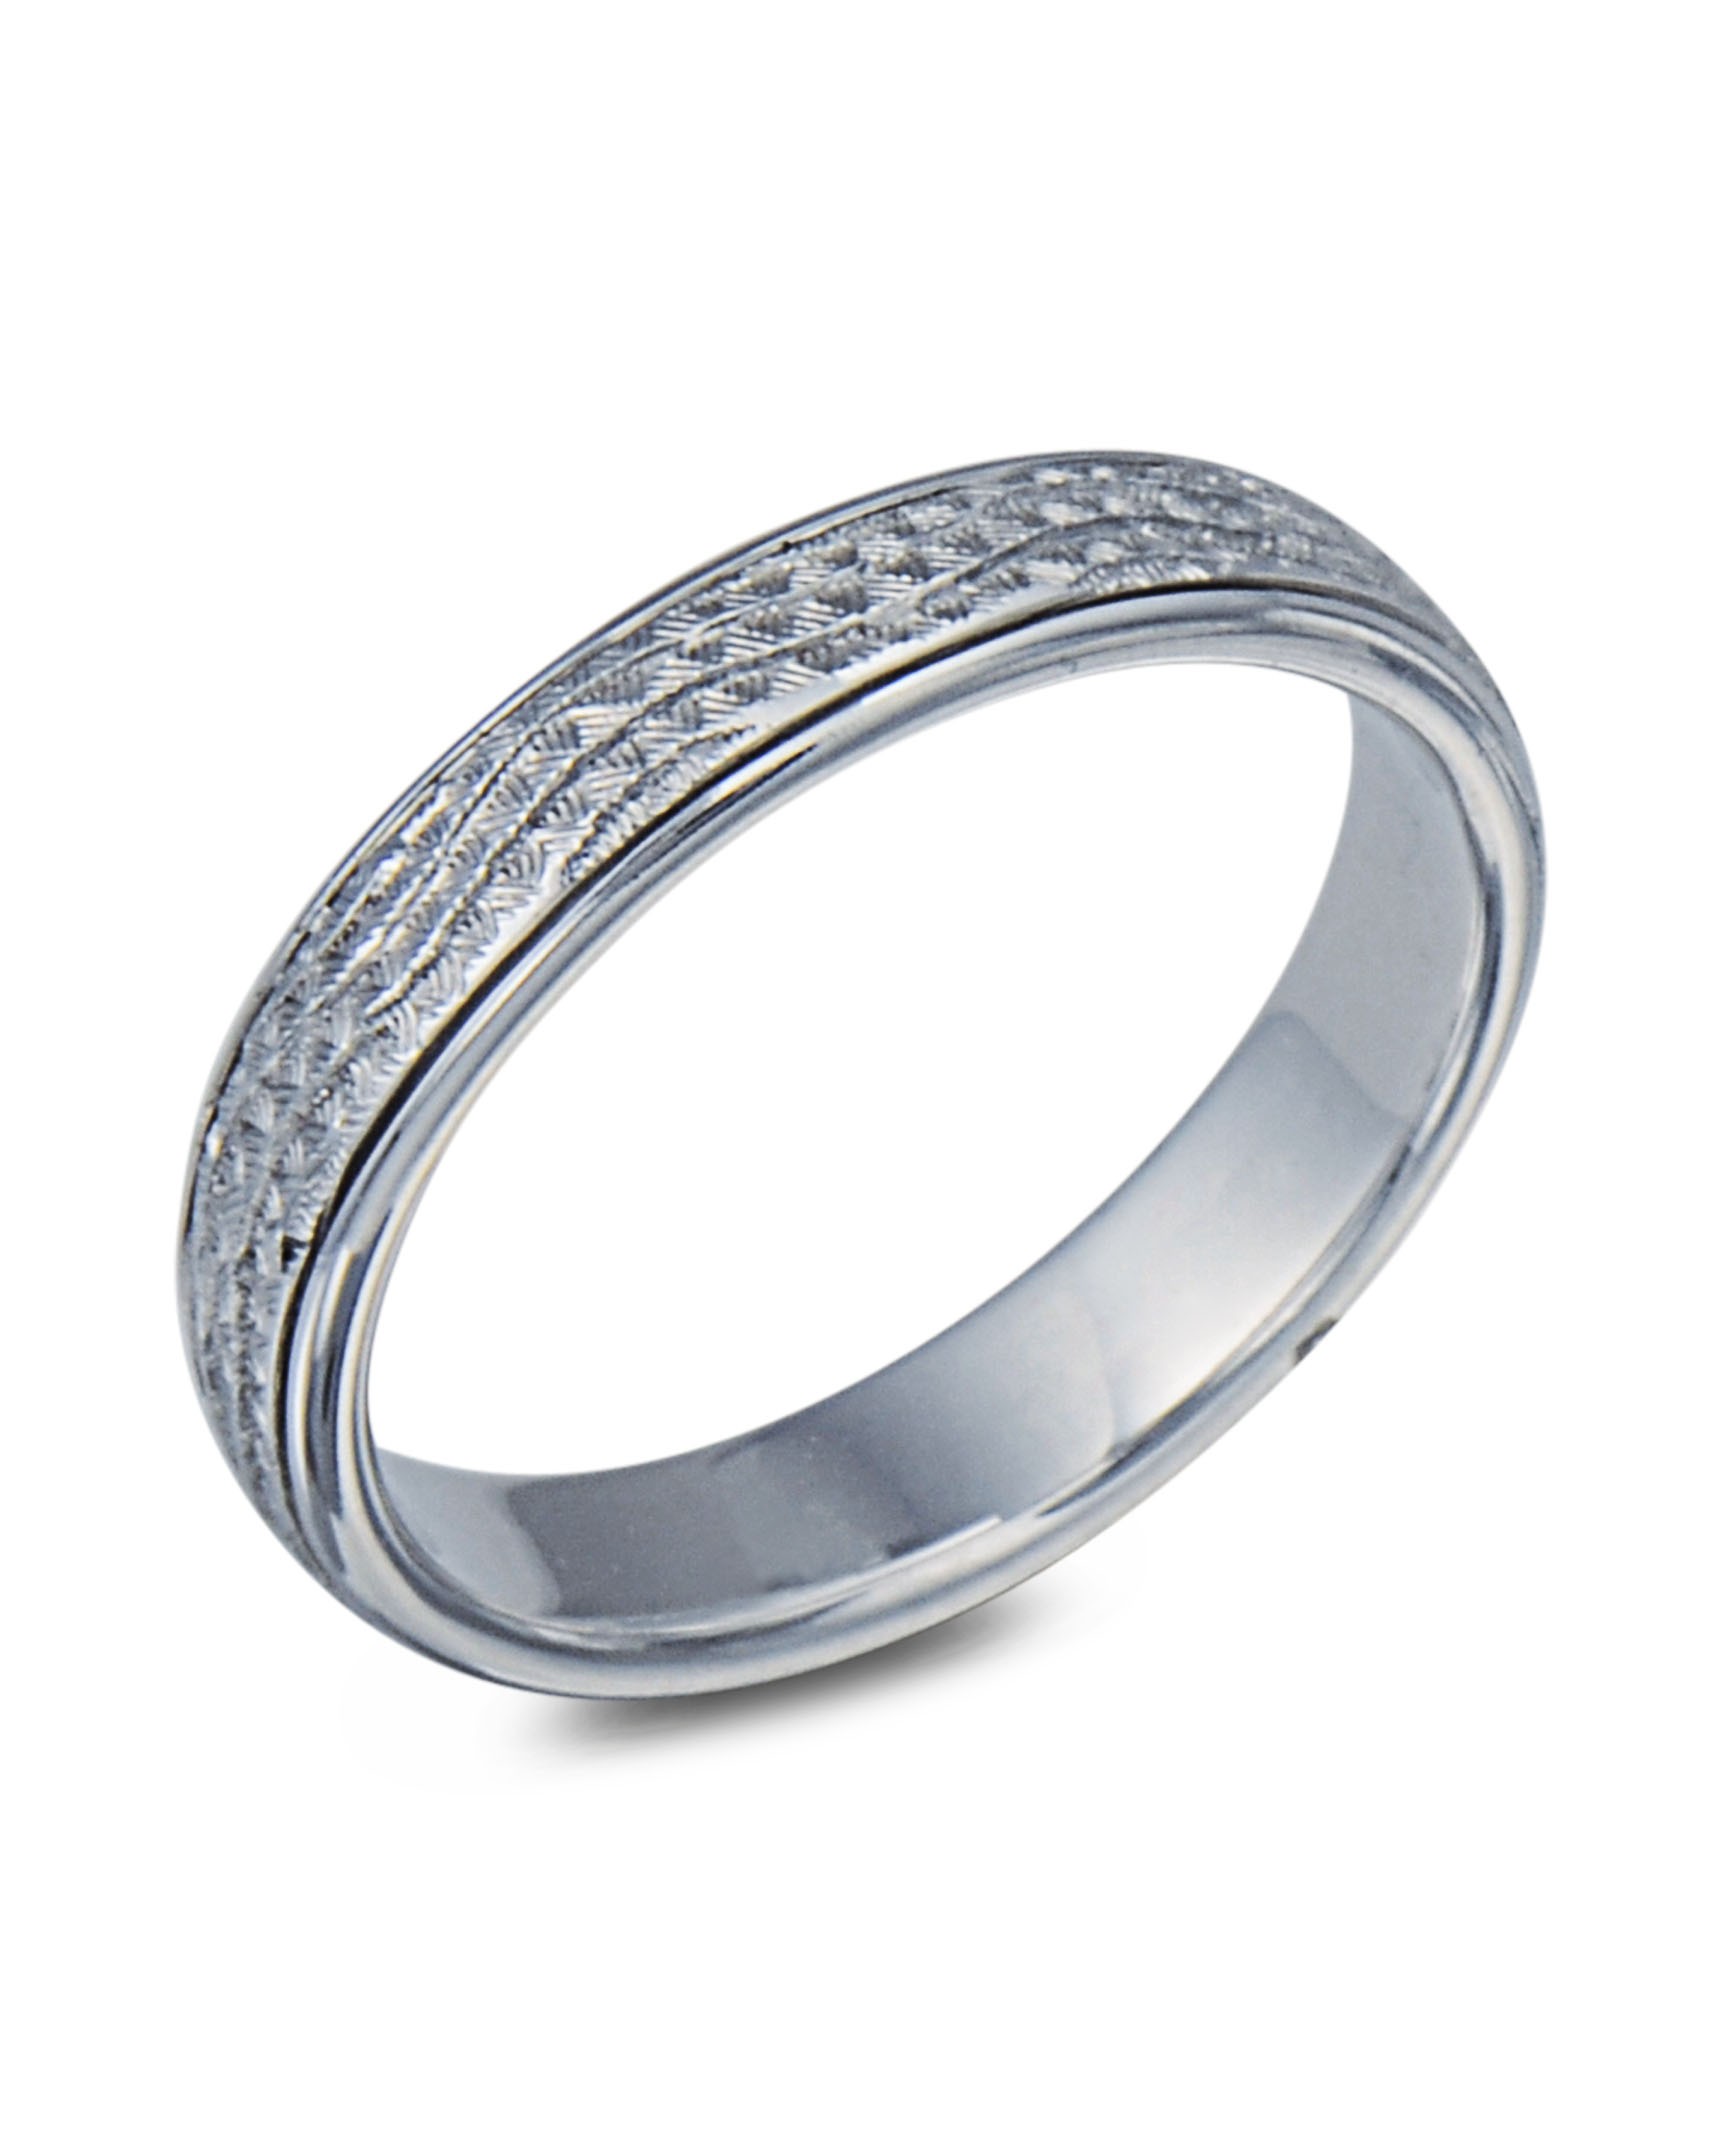 c all antique platinum engraved band eternity bands with reproduction wedding p diamond engraving